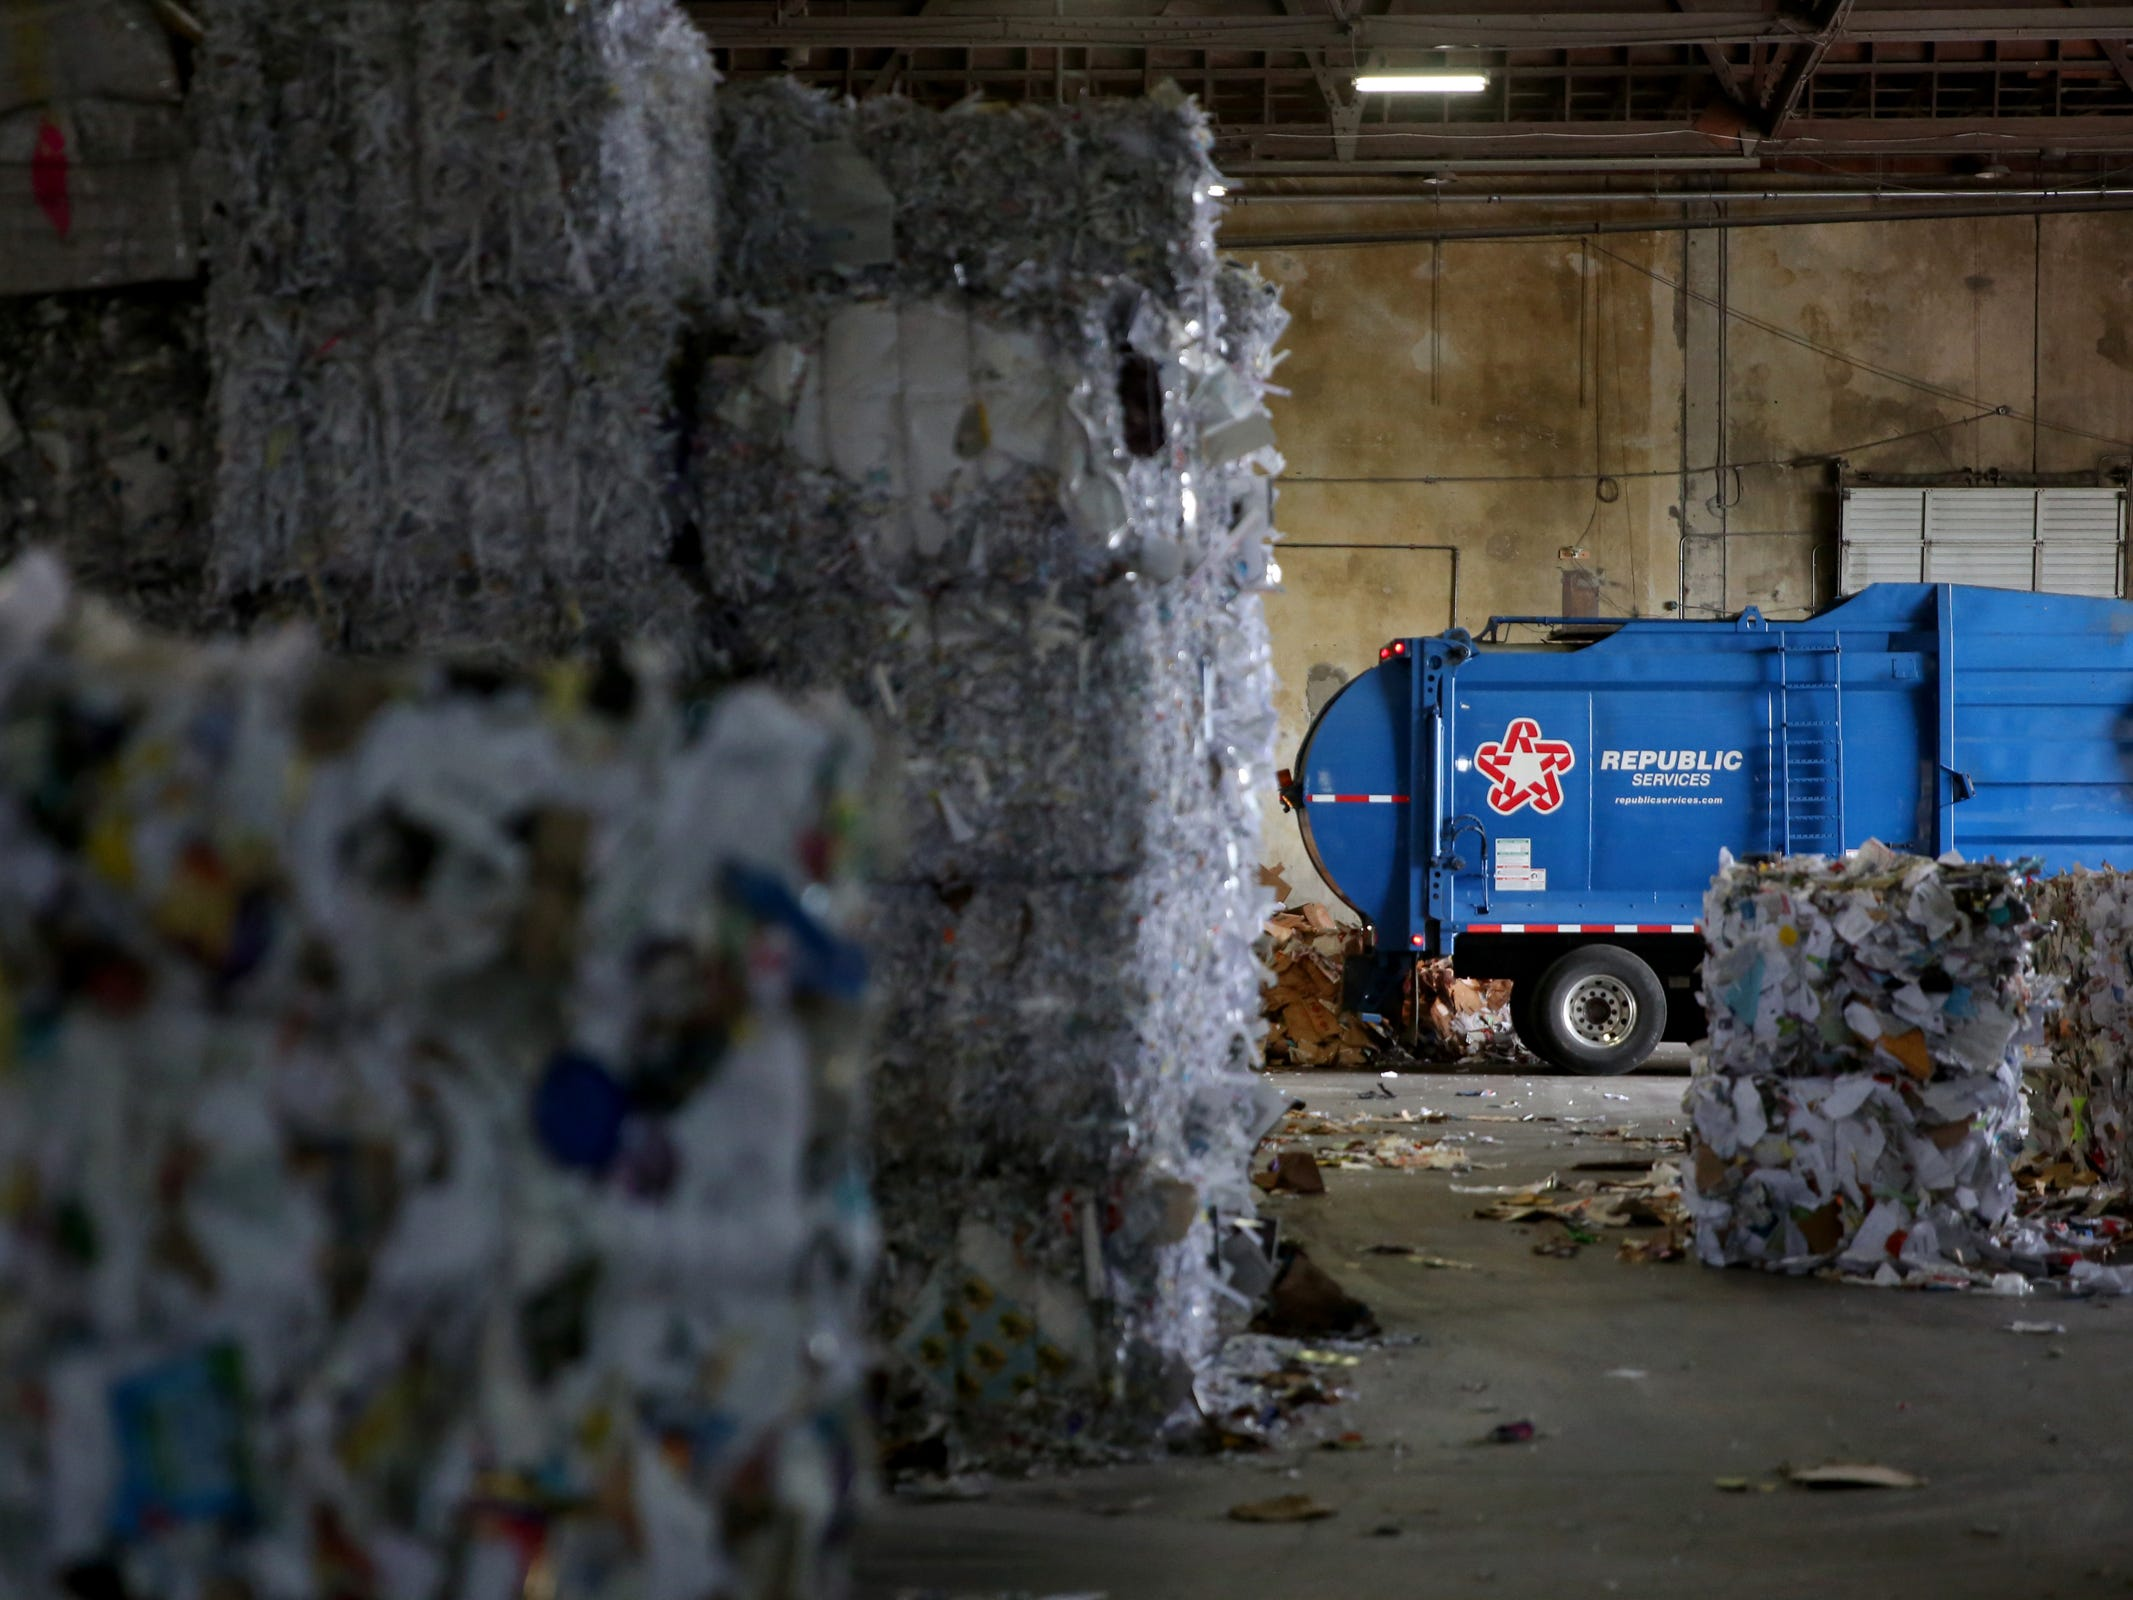 A truck empties a load of recyclables at Garten Recycling in Salem on Friday, Aug. 3, 2018.